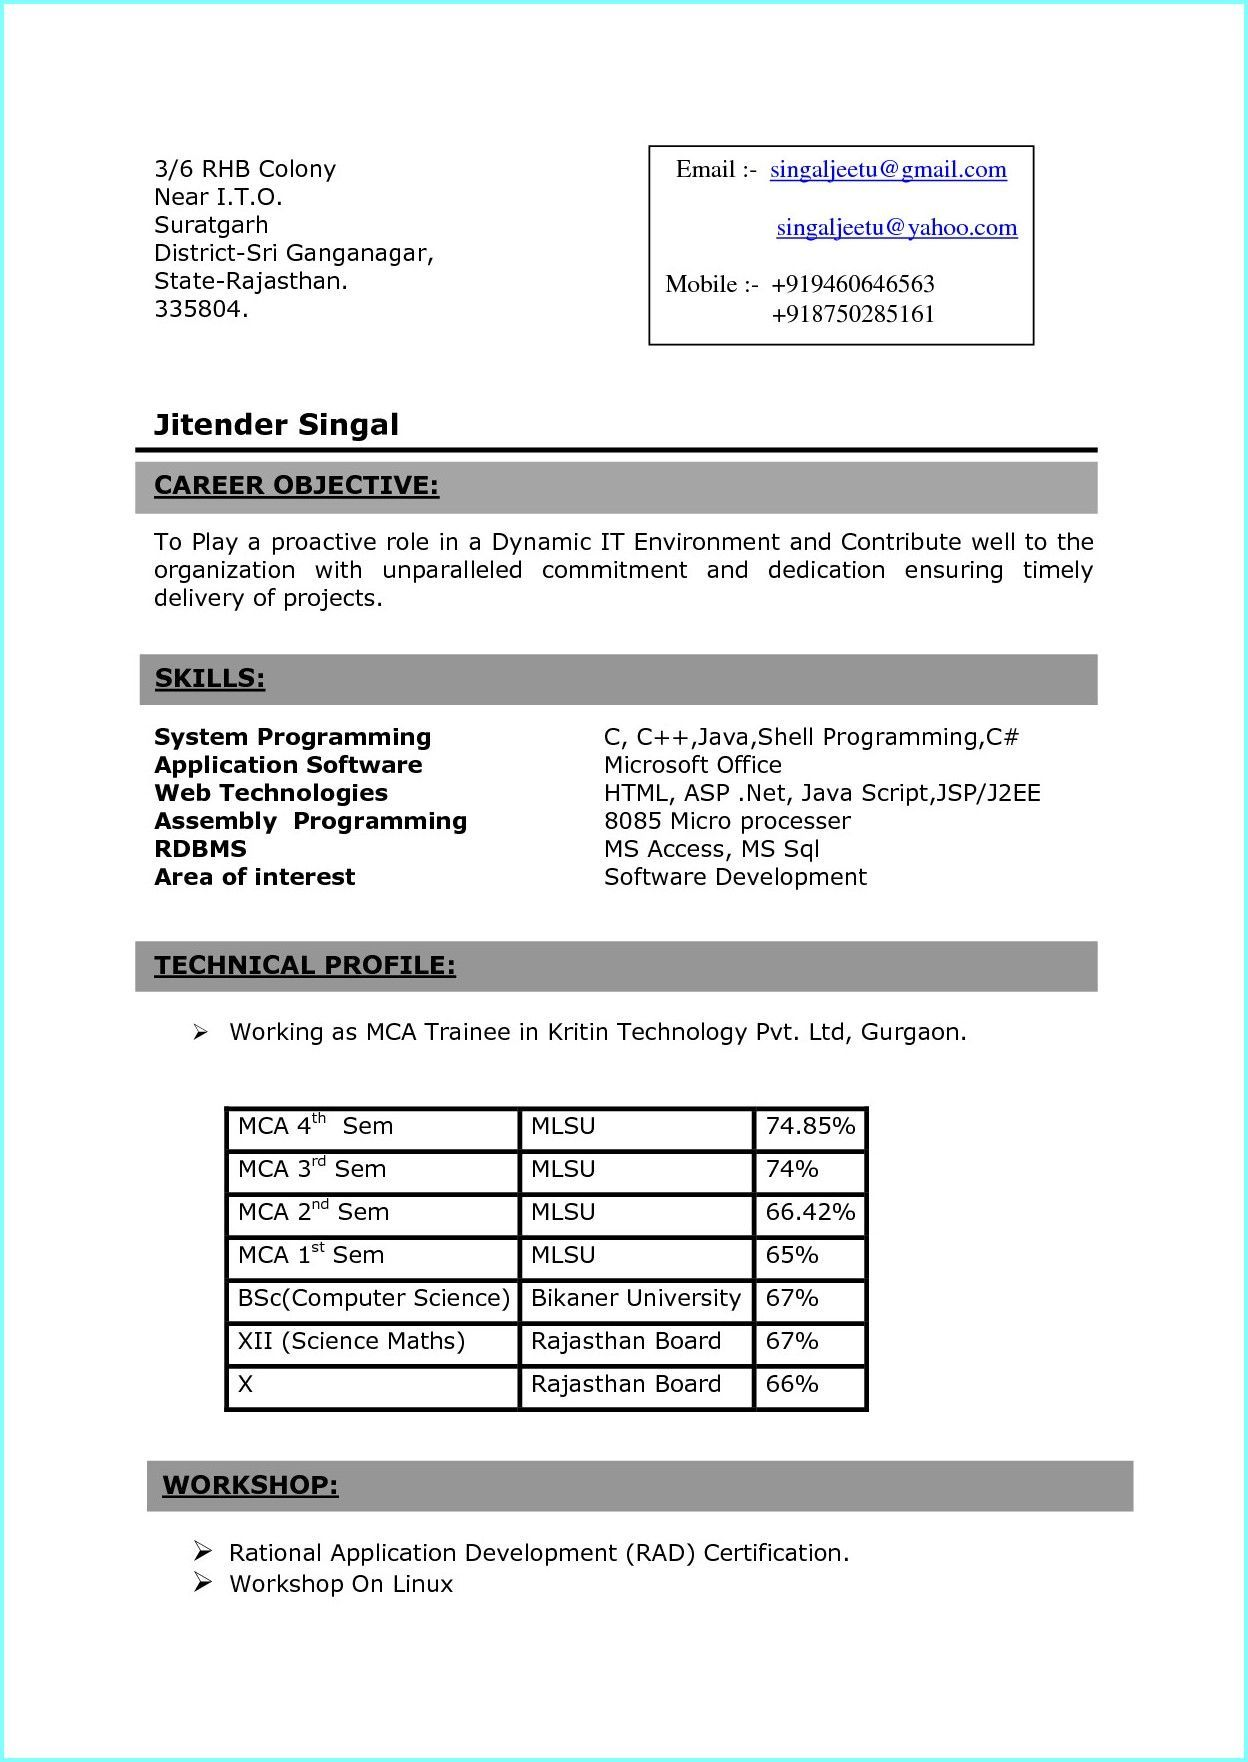 Resume Samples For Freshers In India